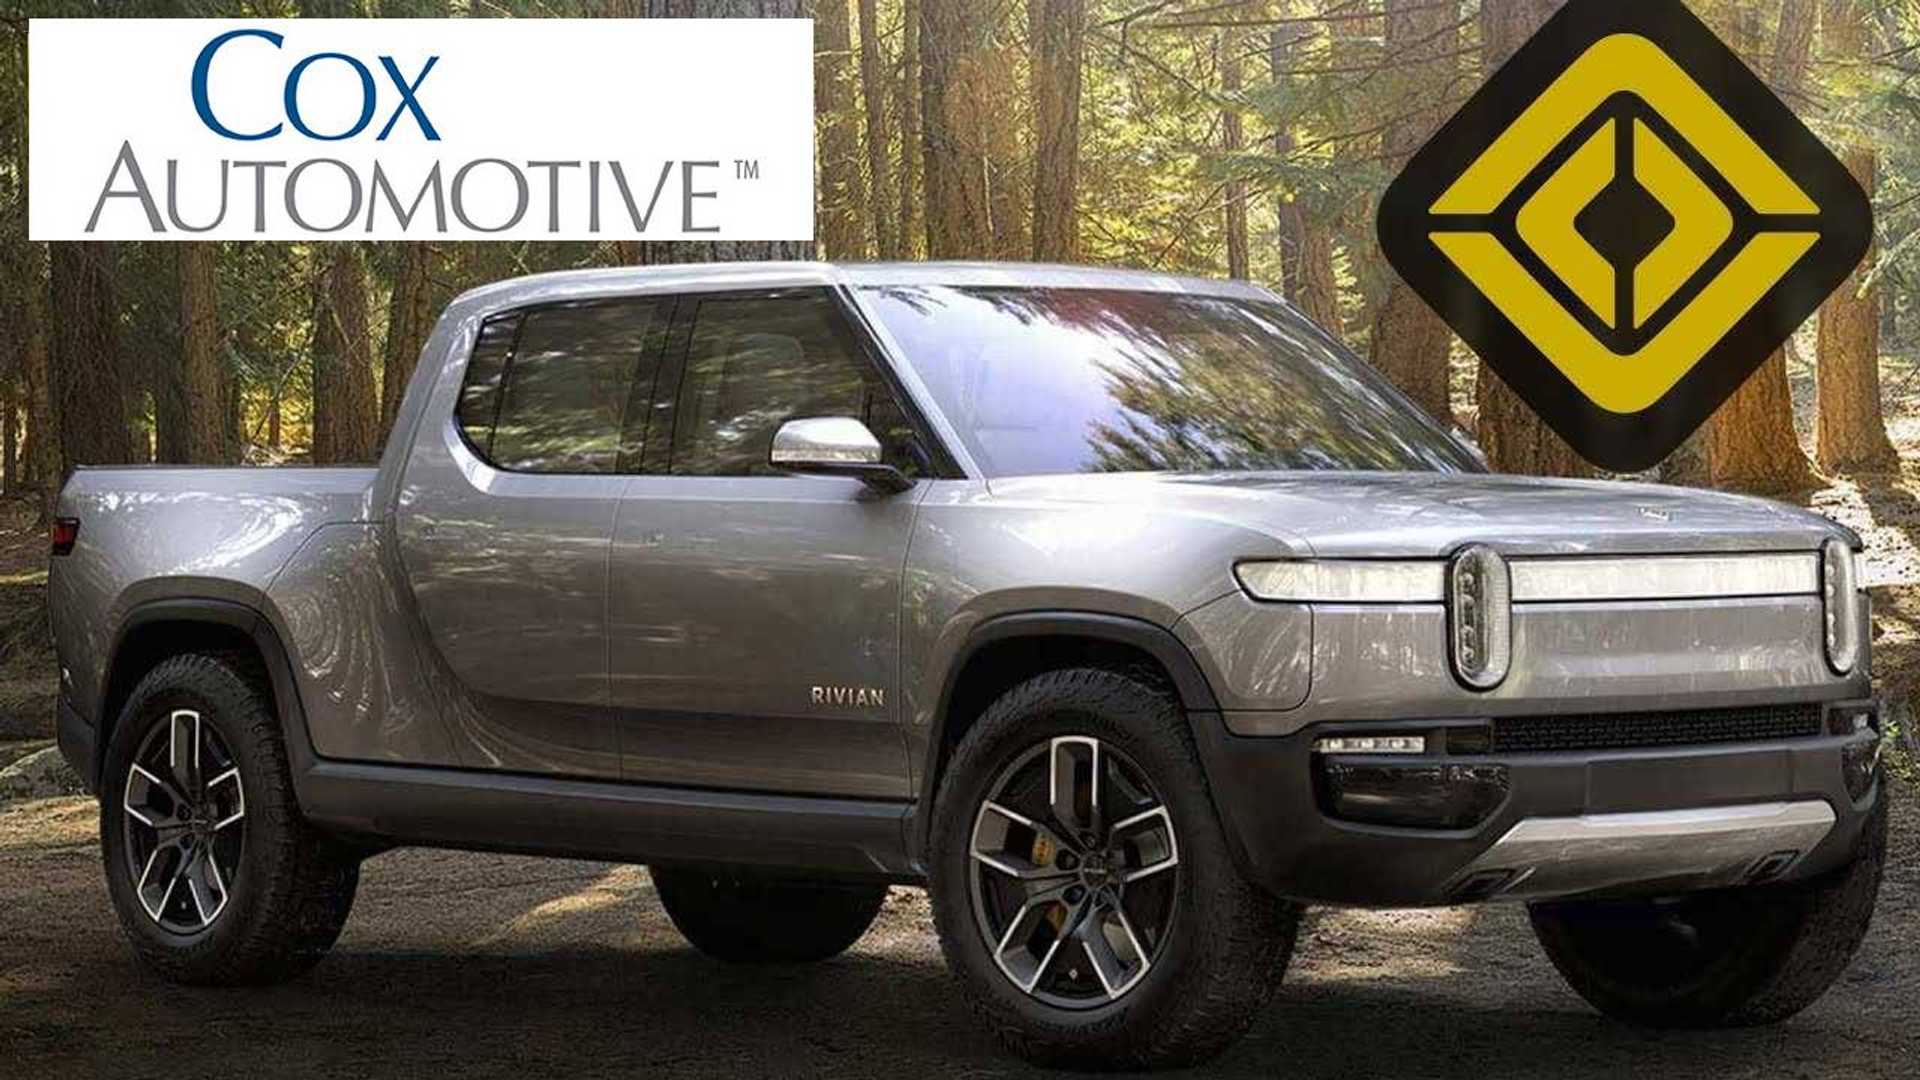 Cox Automotive Invests Into Rivian: Joins Ford, Amazon, Others